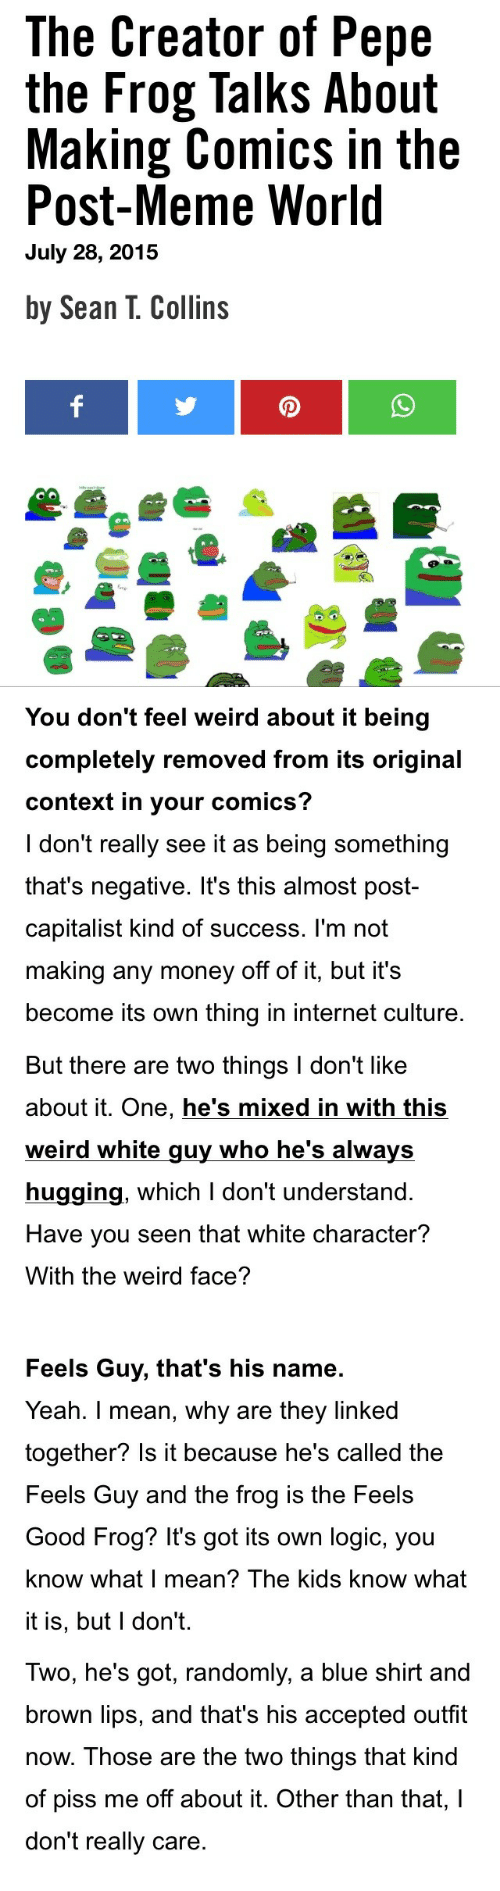 Feels Guy: The Creator of Pepe  the Frog Talks About  Making Comics in the  Post-Meme World  July 28, 2015  by Sean T. Collins   You don't feel weird about it being  completely removed from its original  context in your comics?  I don't really see it as being something  that's negative. It's this almost post-  capitalist kind of success. l'm not  making any money off of it, but it's  become its own thing in internet culture   But there are two things I don't like  about it. One, he's mixed in with this  weird white guy who he's always  hugging, which I don't understand.  Have you seen that white character?  With the weird face?  Feels Guy, that's his name  Yeah. I mean, why are they linked  together? Is it because he's called the  Feels Guy and the frog is the Feels  Good Frog? It's got its own logic, you  know what I mean? The kids know what  it is, but l don't.   Iwo, he's got, randomly, a blue shirt and  brown lips, and that's his accepted outfit  now. Those are the two things that kind  of piss me off about it. Other than that,I  don't really care